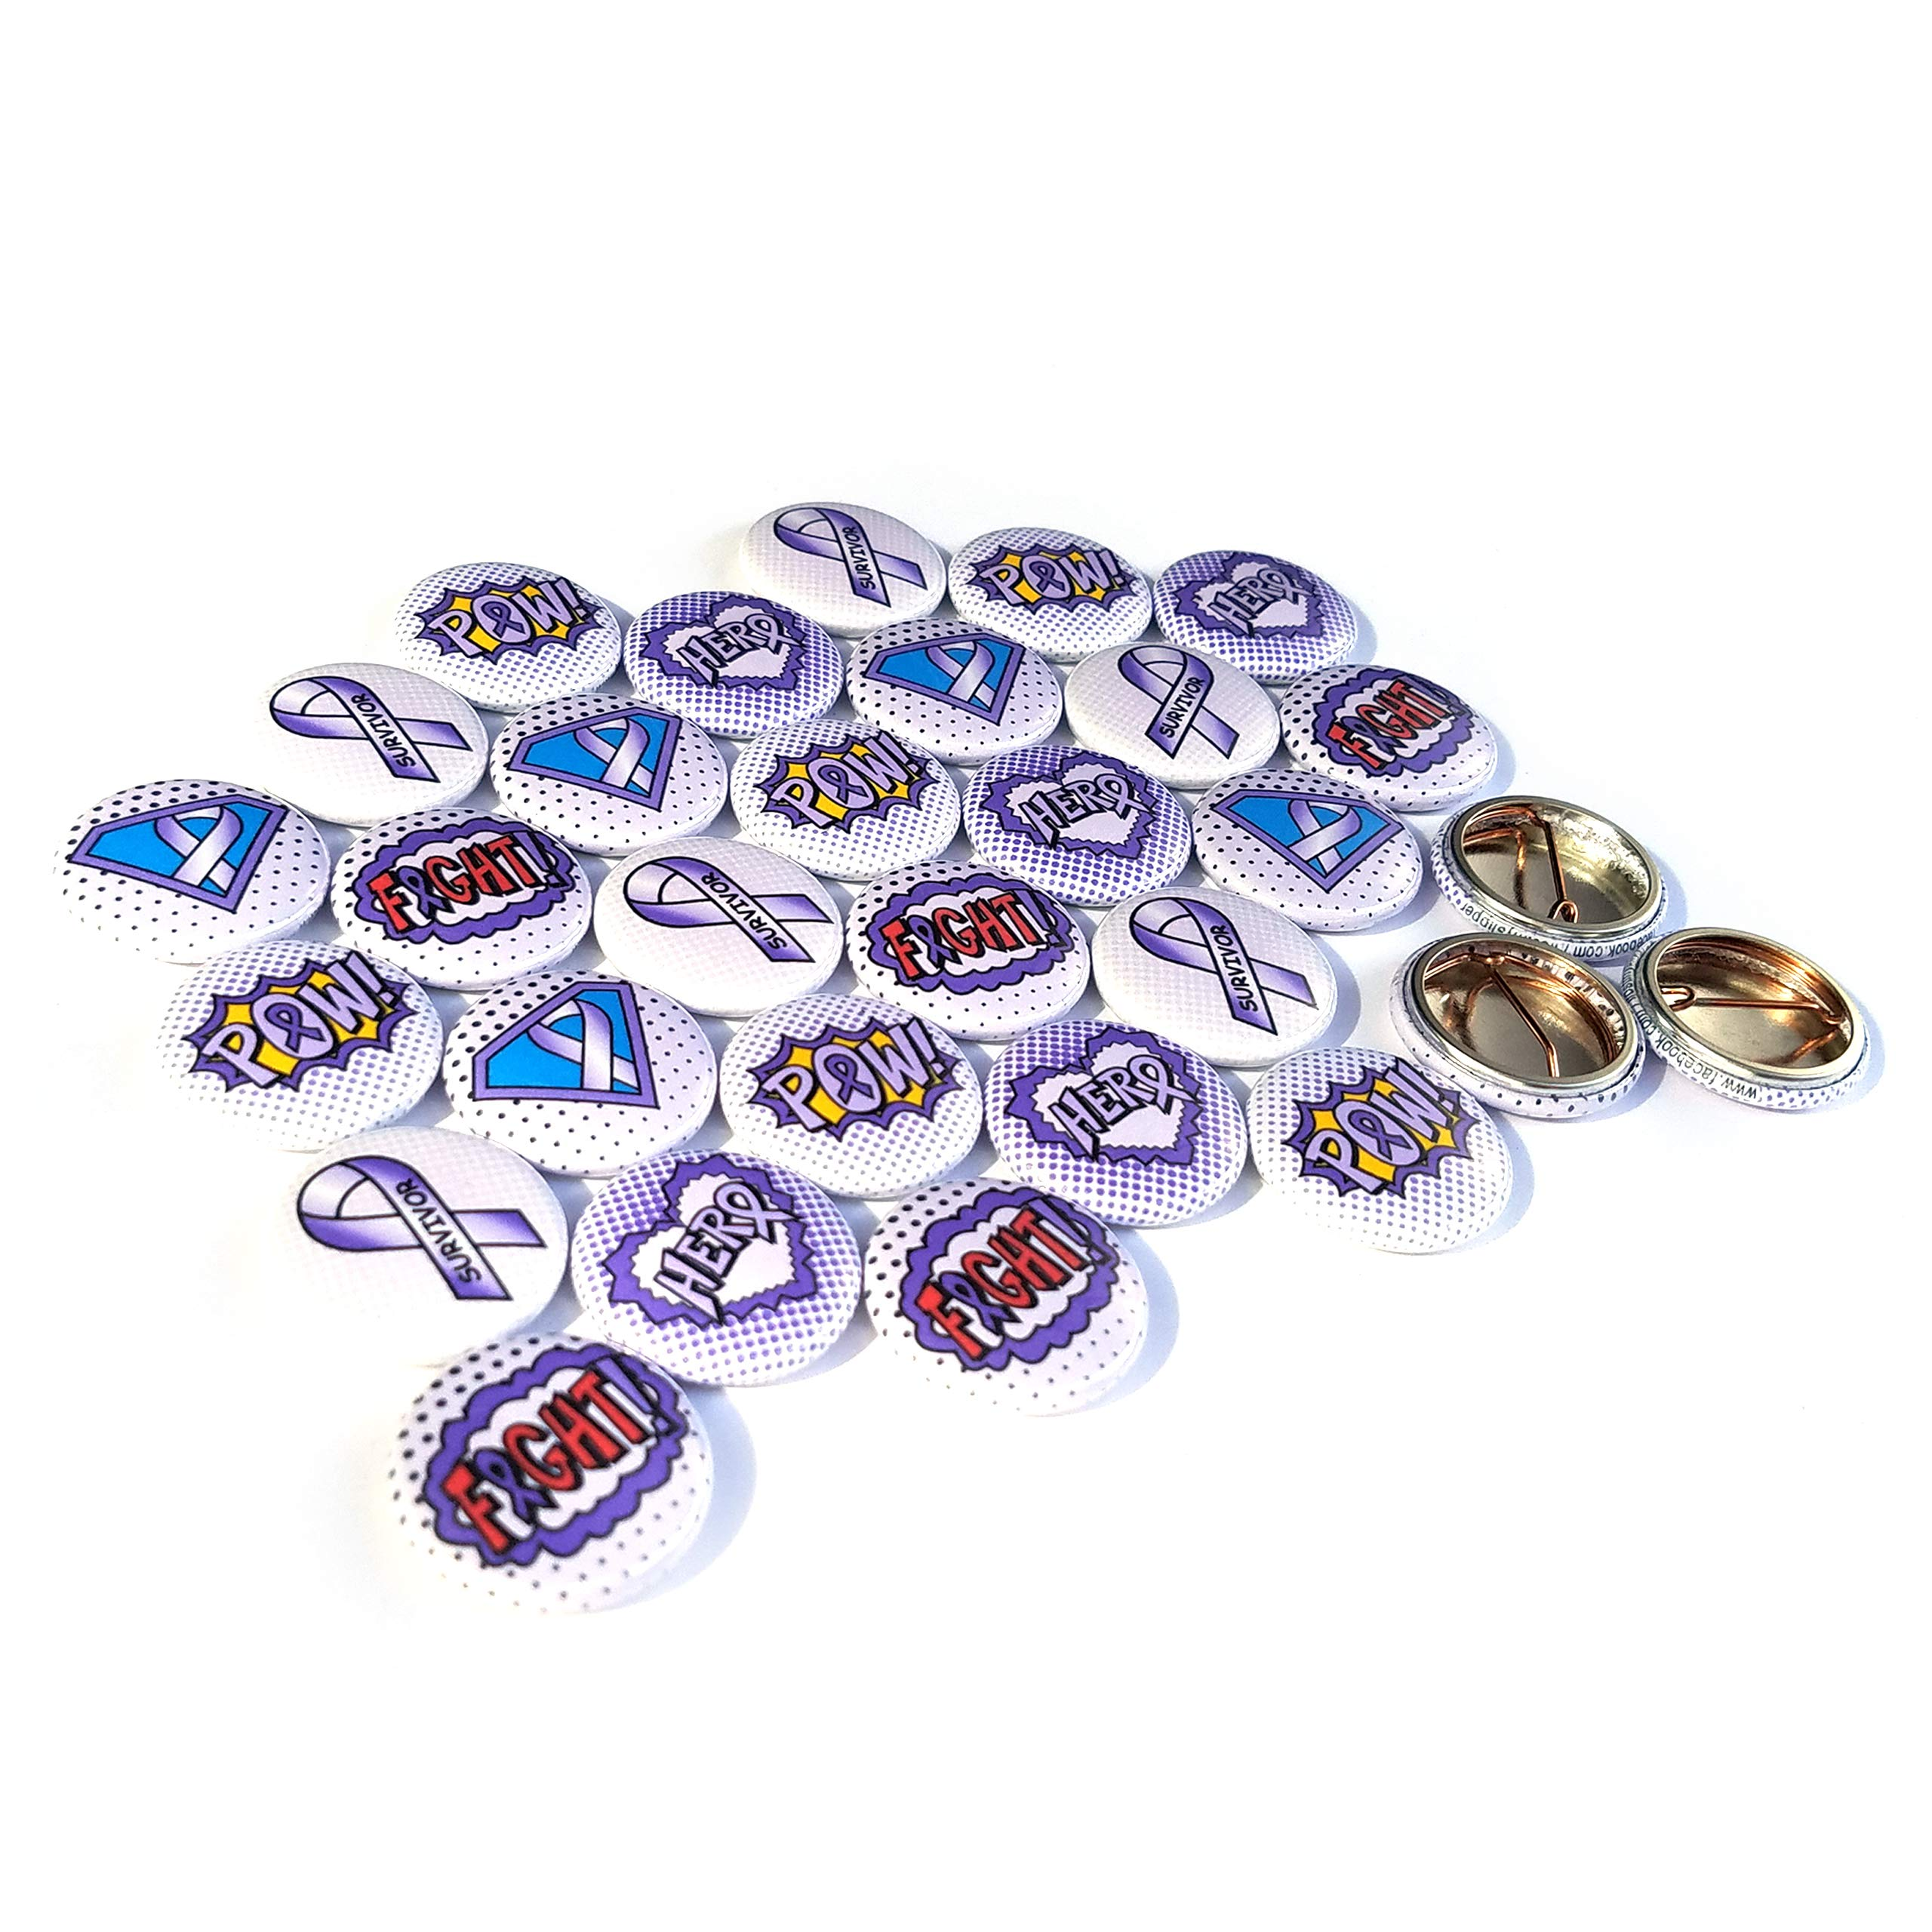 Superhero Awareness Pins - LAVENDER. All Cancer Awareness, Craniosynostosis, Epilepsy, Gynecological Cancer, Hypokalemic Periodic Paralysis, Infantile Spasms, Rett Syndrome. (1'' Pins, 30 Piece Set) by ILMS (Image #2)